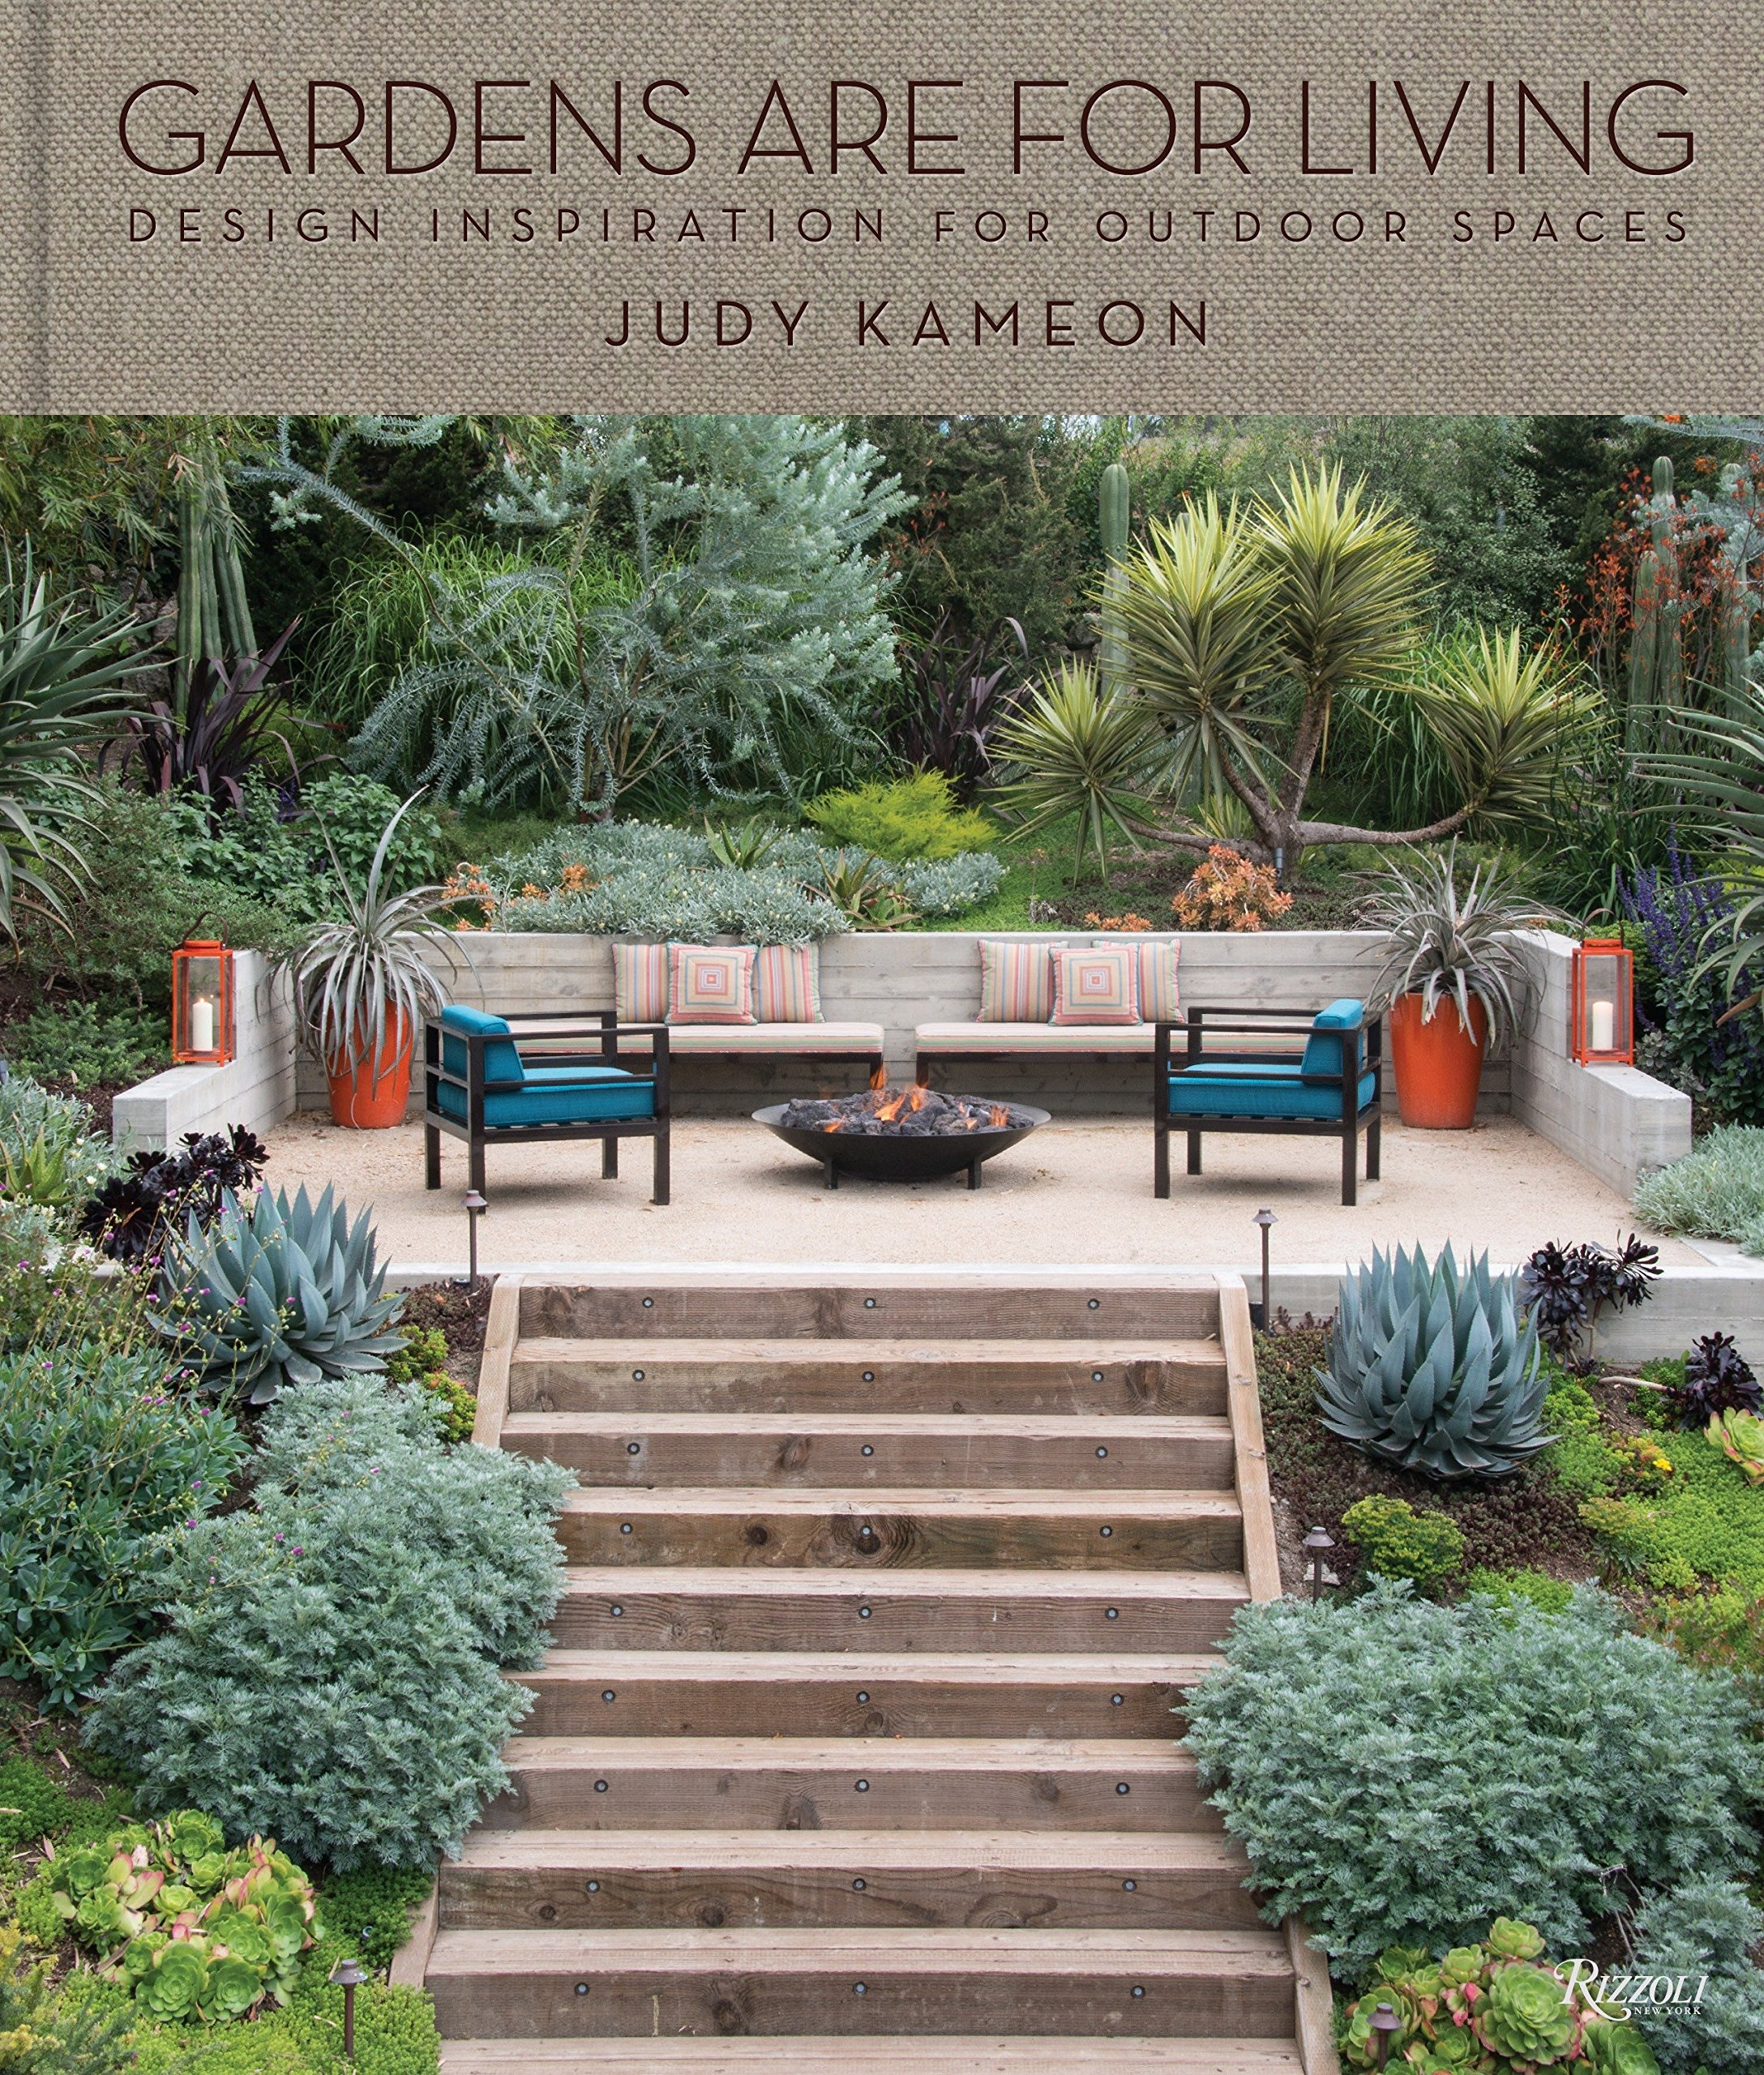 Gardens Are For Living: Design Inspiration for Outdoor Spaces: Judy ...